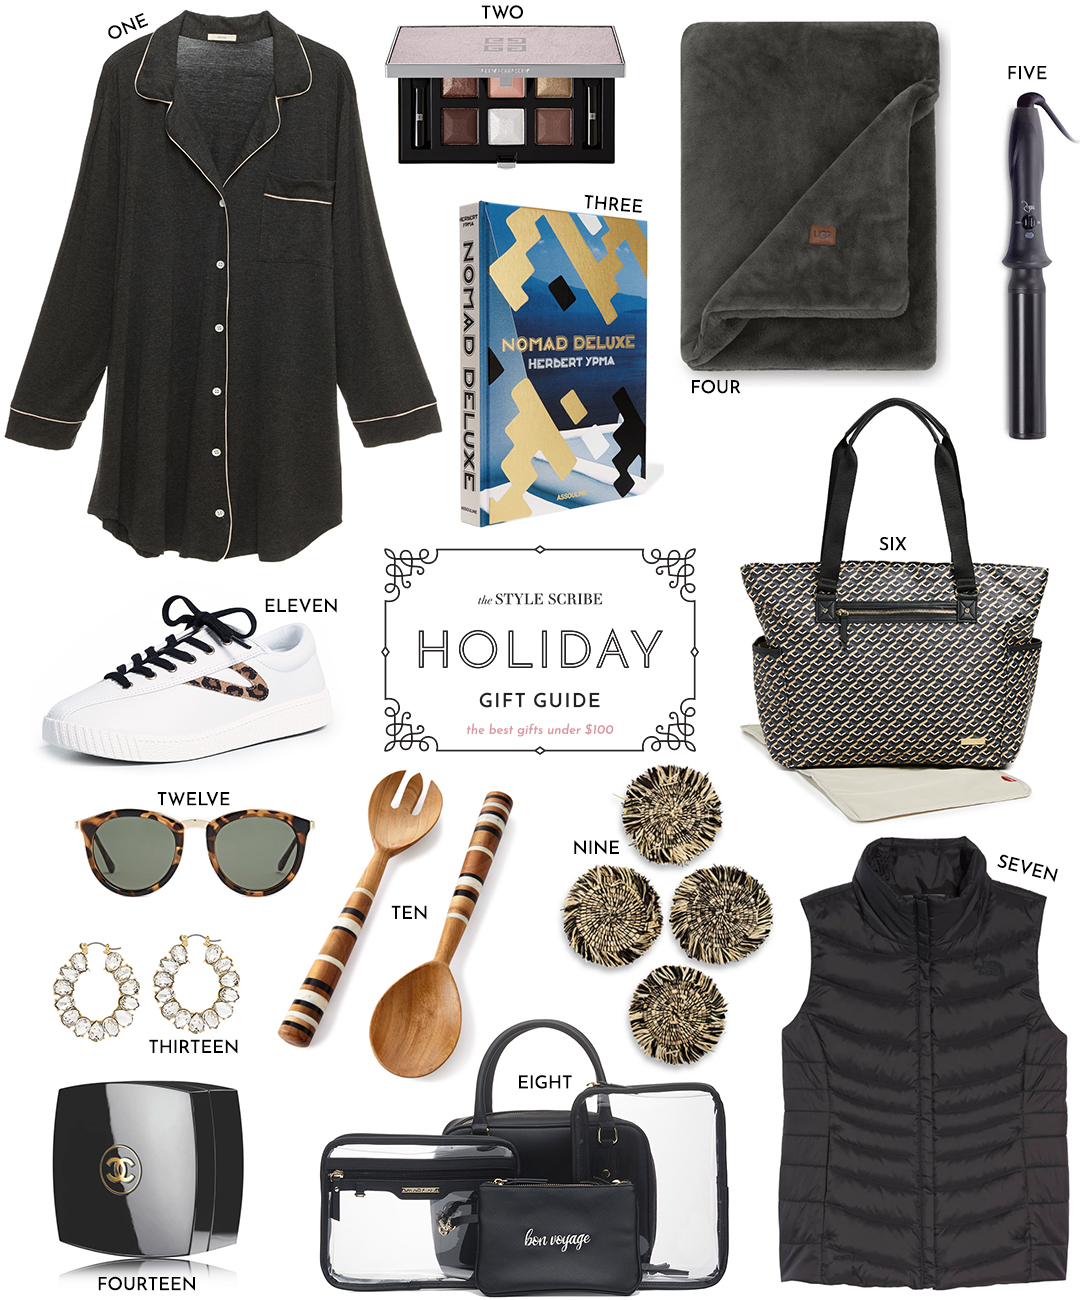 HOLIDAY GIFT GUIDE // BEST GIFTS FOR HER UNDER $100